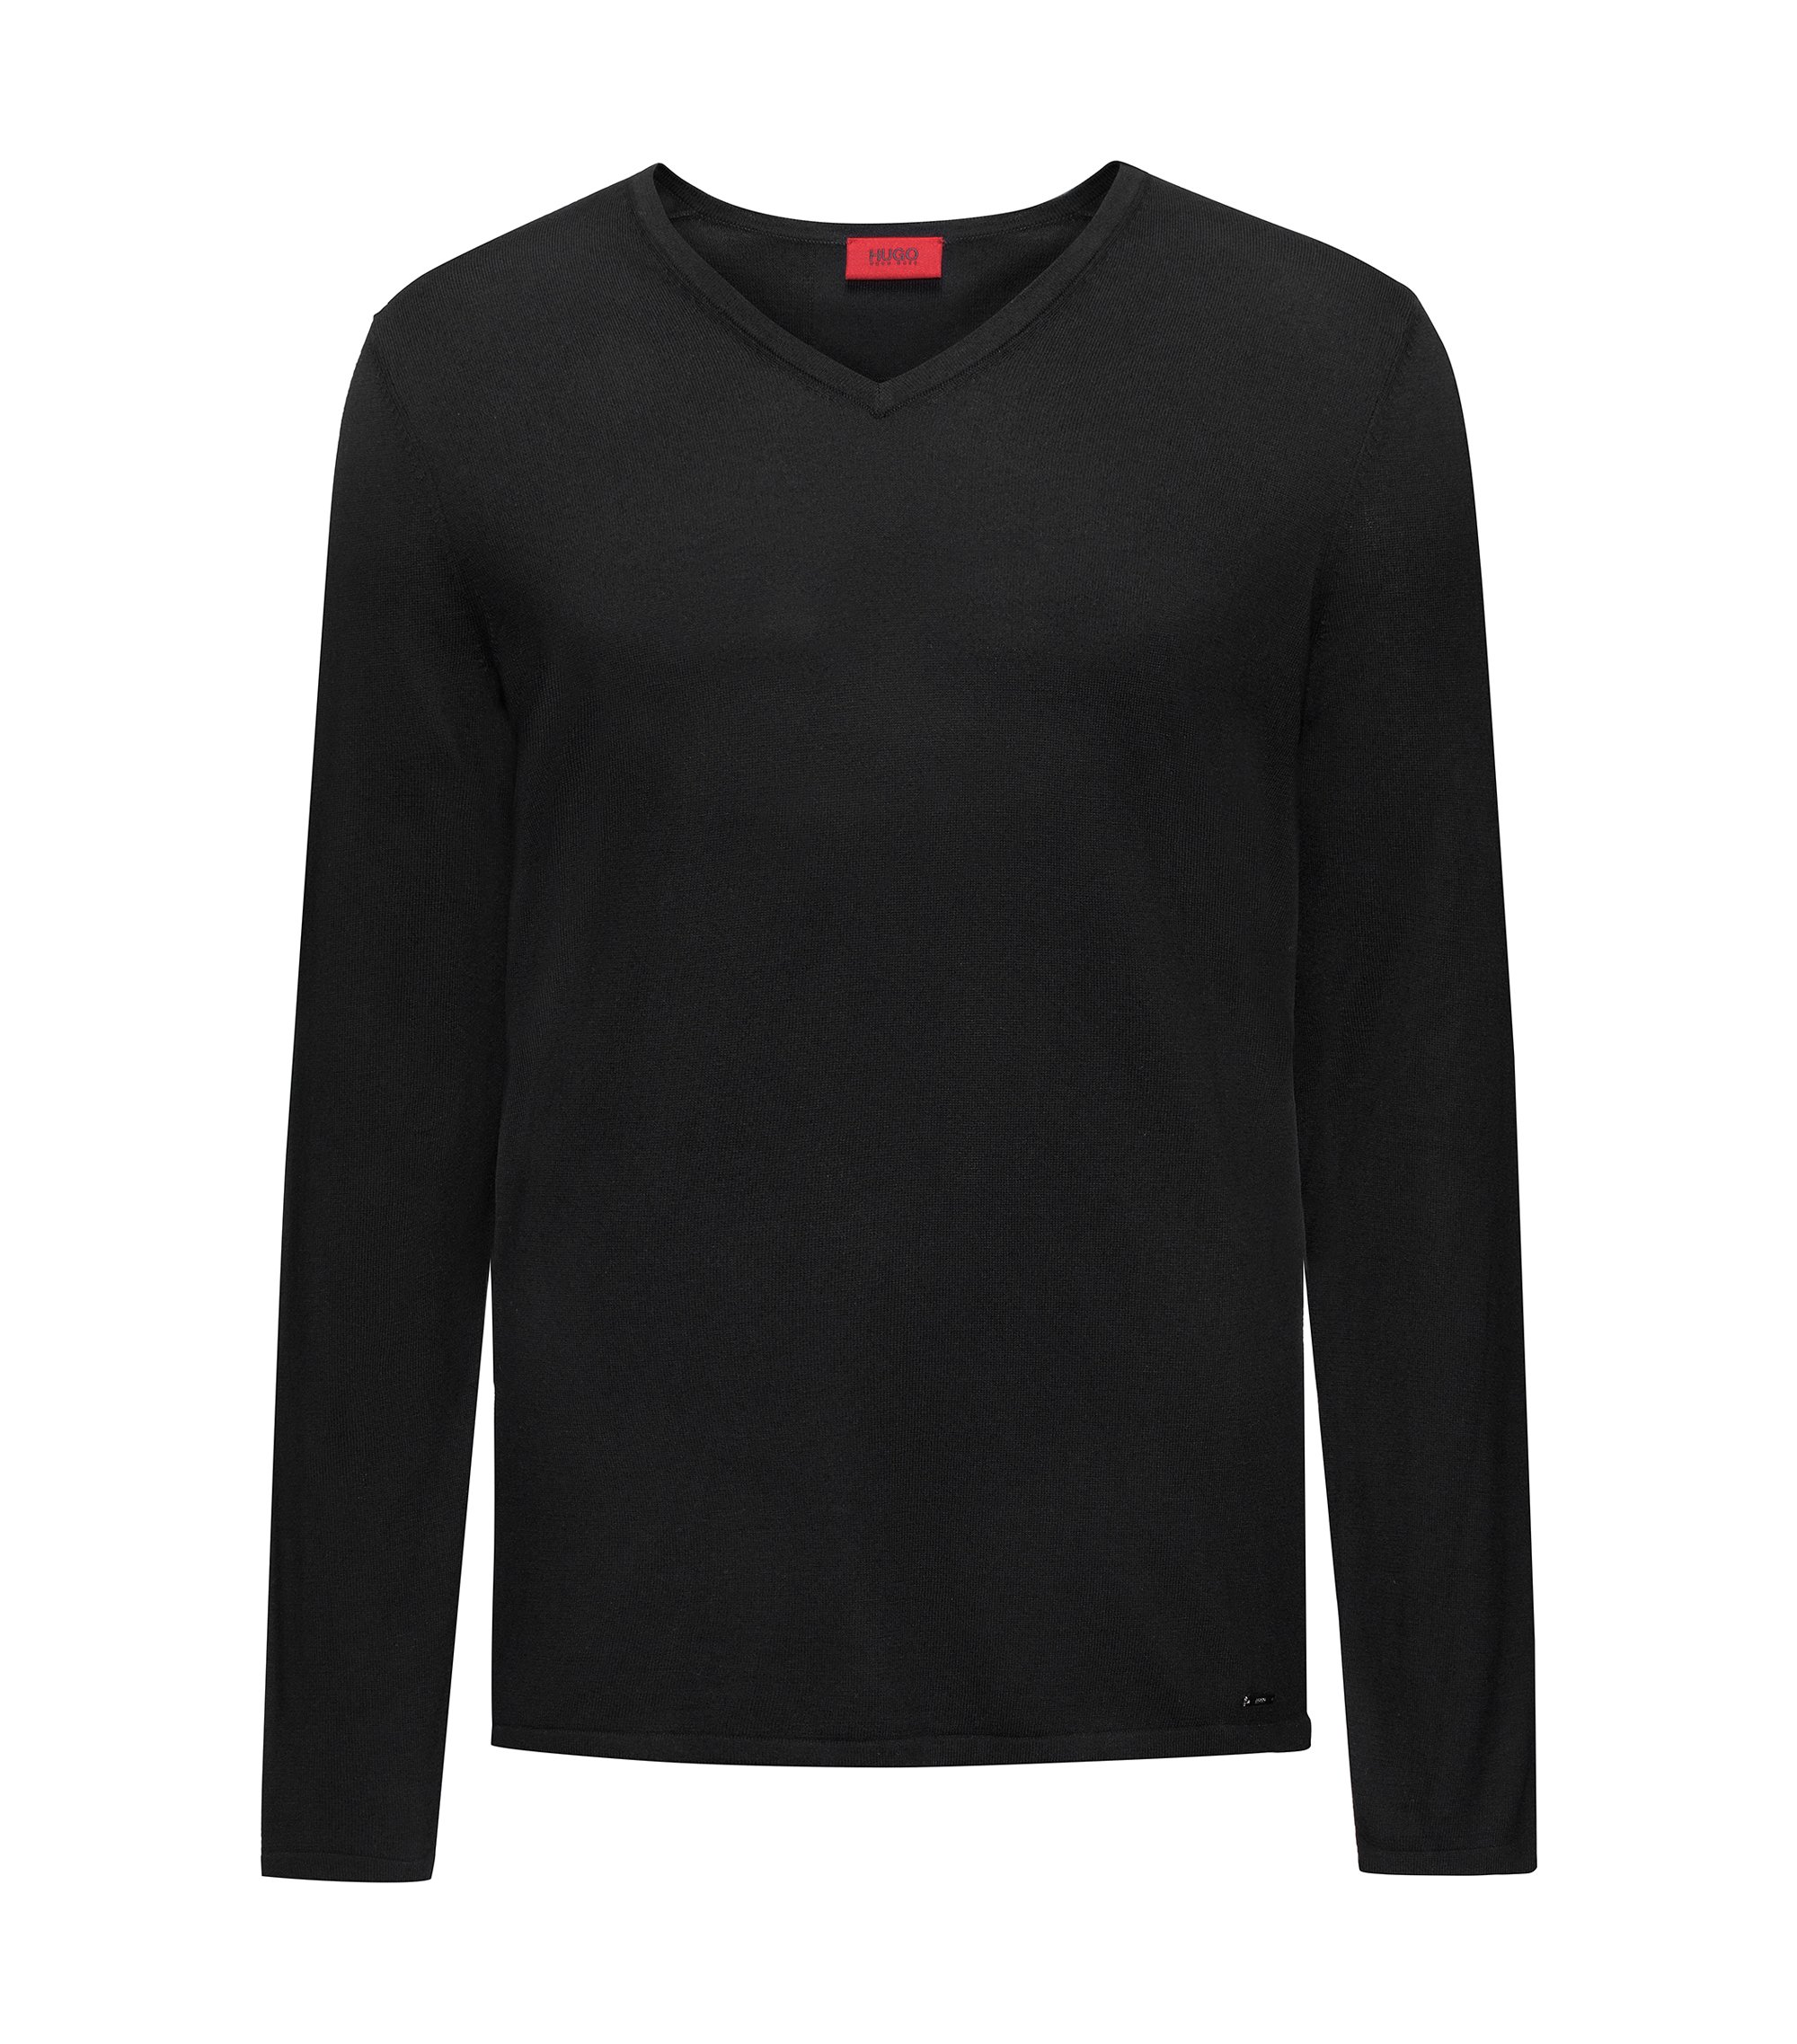 V-neck sweater in a cotton blend, Black